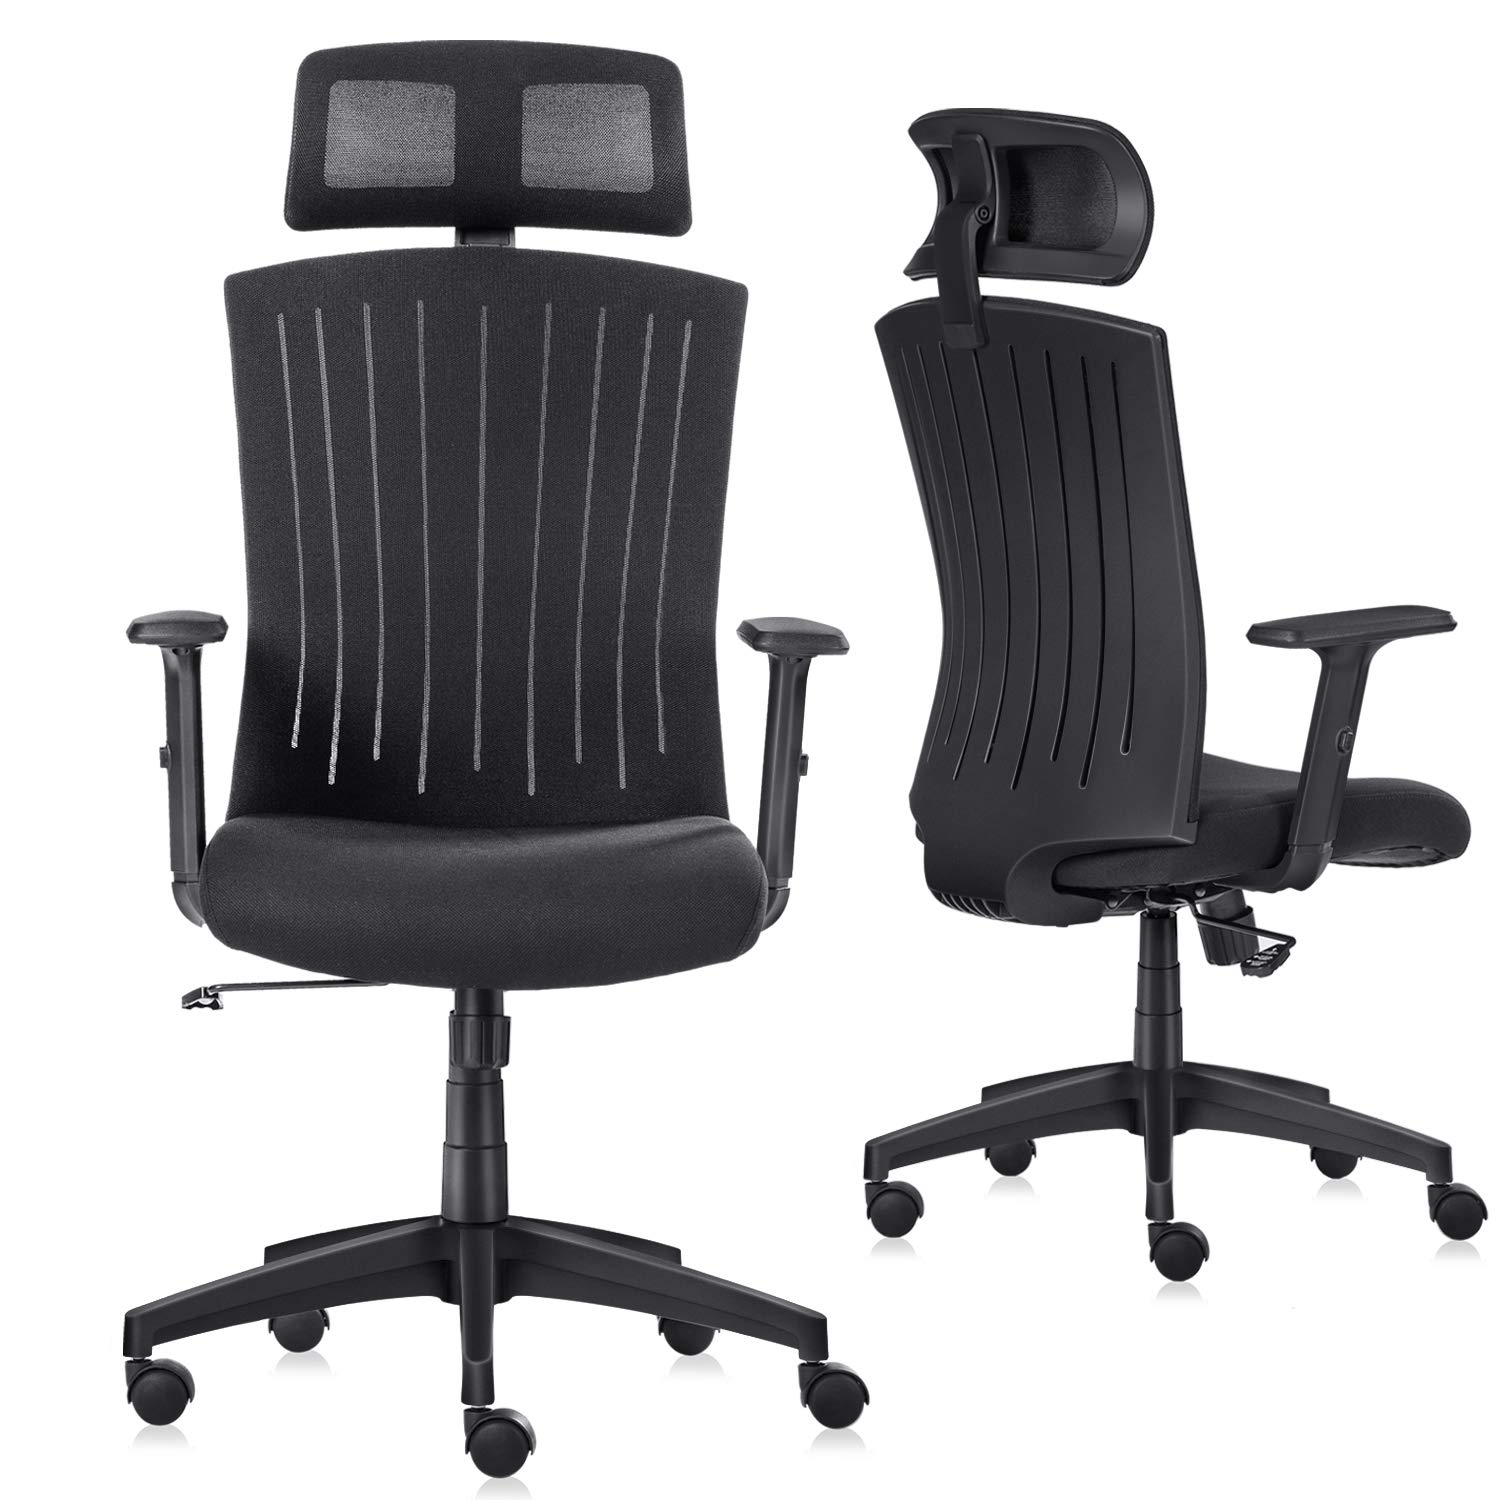 A Idiots Information To Adjustable Workplace Desk Defined Ergonomic Office Chair|Komene Computer Desk Chairs with Adjustable  Headrest,Armrests, Seat Height